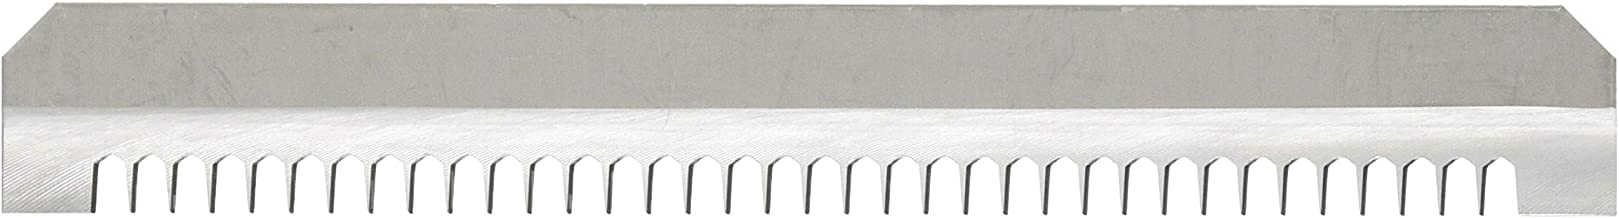 Benriner S-3768, Medium Blade Replacement for Super Benriner Slicer